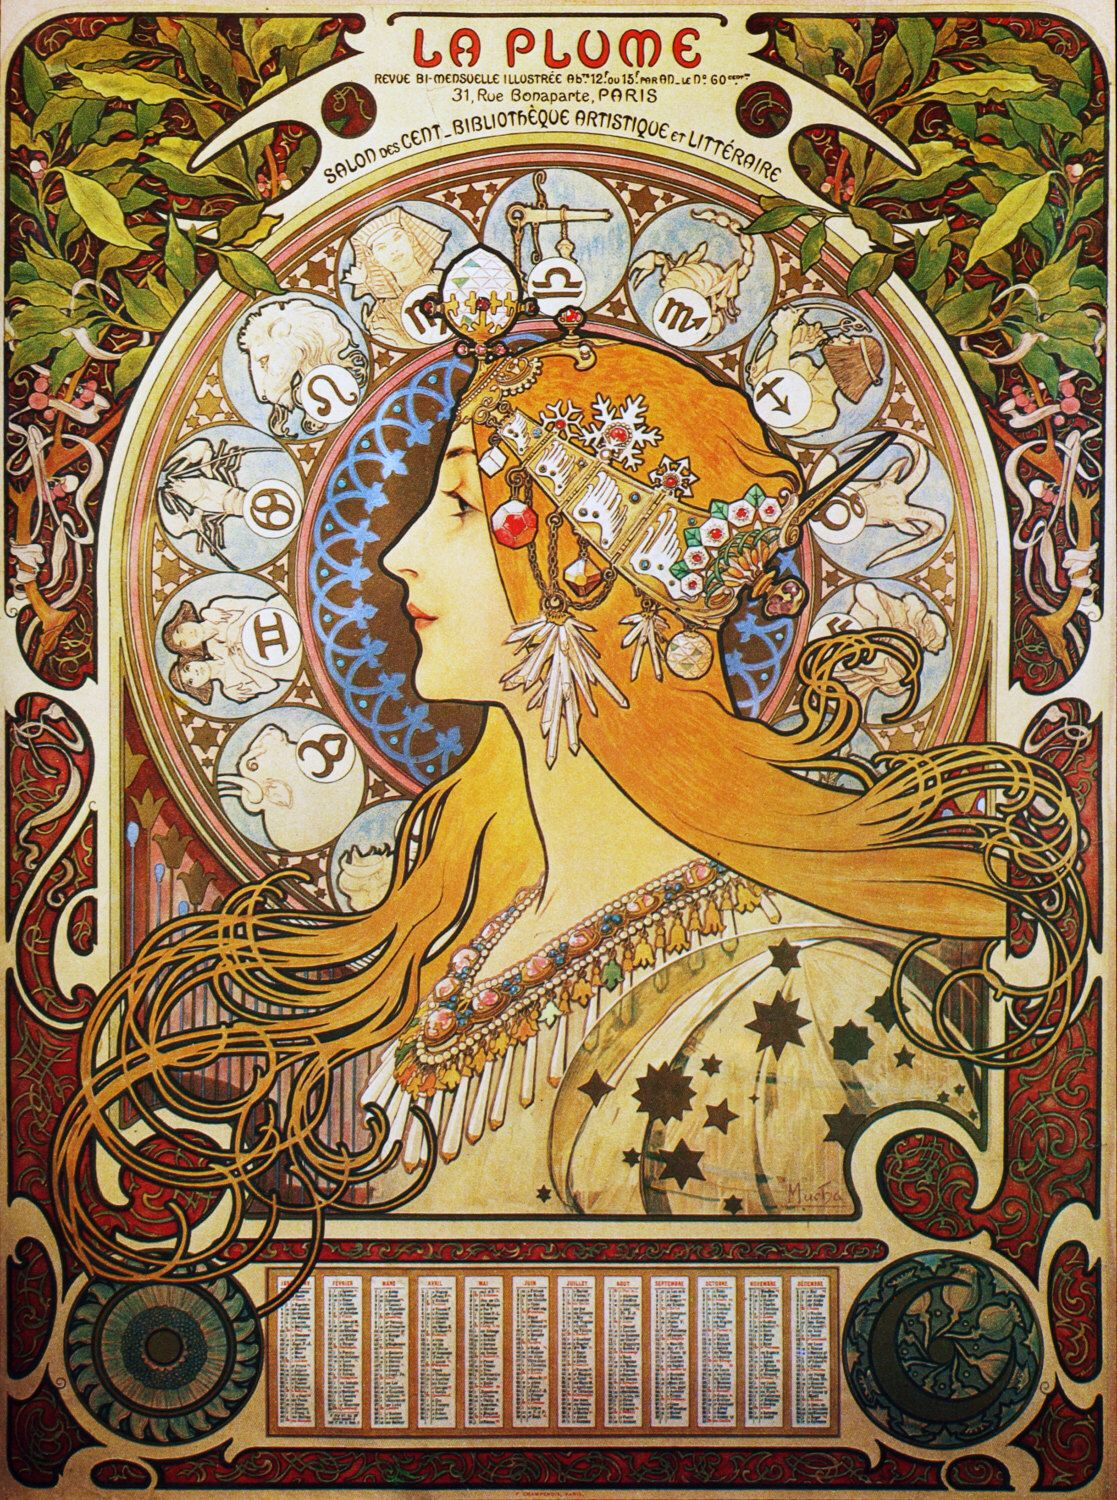 MUCHA CHAMPENOIS FRENCH WOMAN PARIS FRANCE REAL CANVAS GICLEE 8X10 ART PRINT